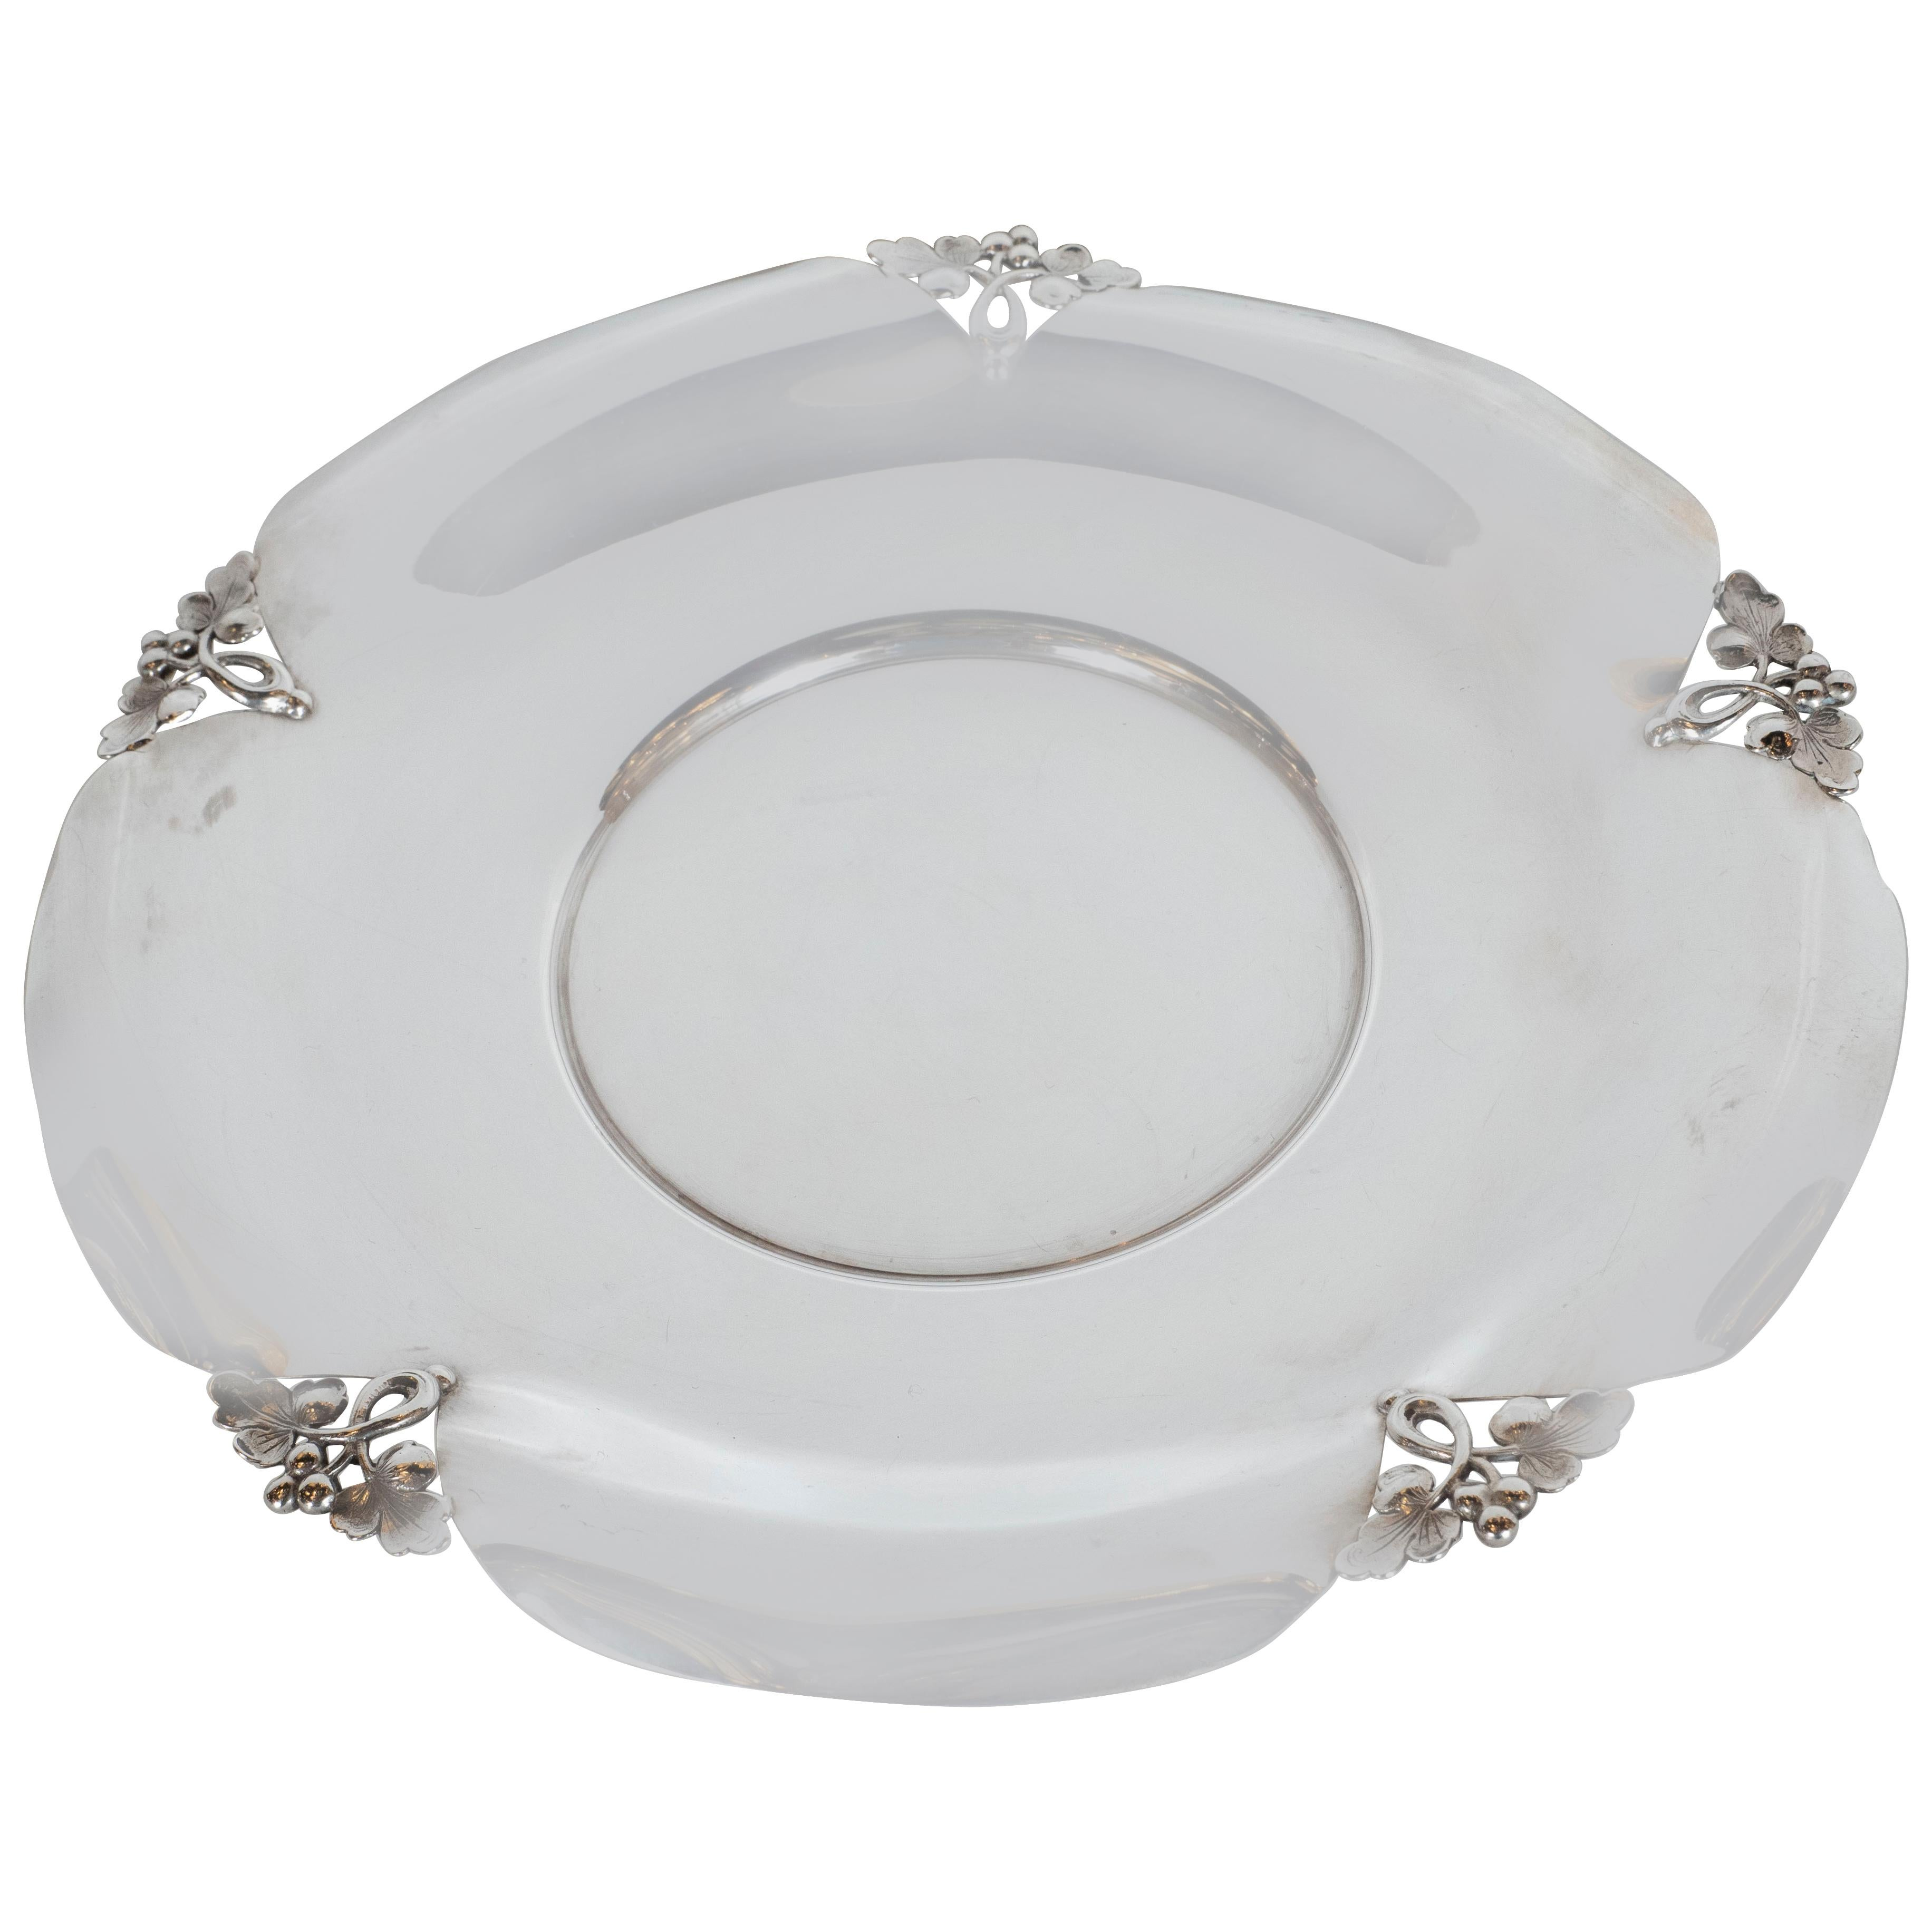 Midcentury Sterling Silver Decorative Dish with Foliate Tray by J.E. Caldwell Co